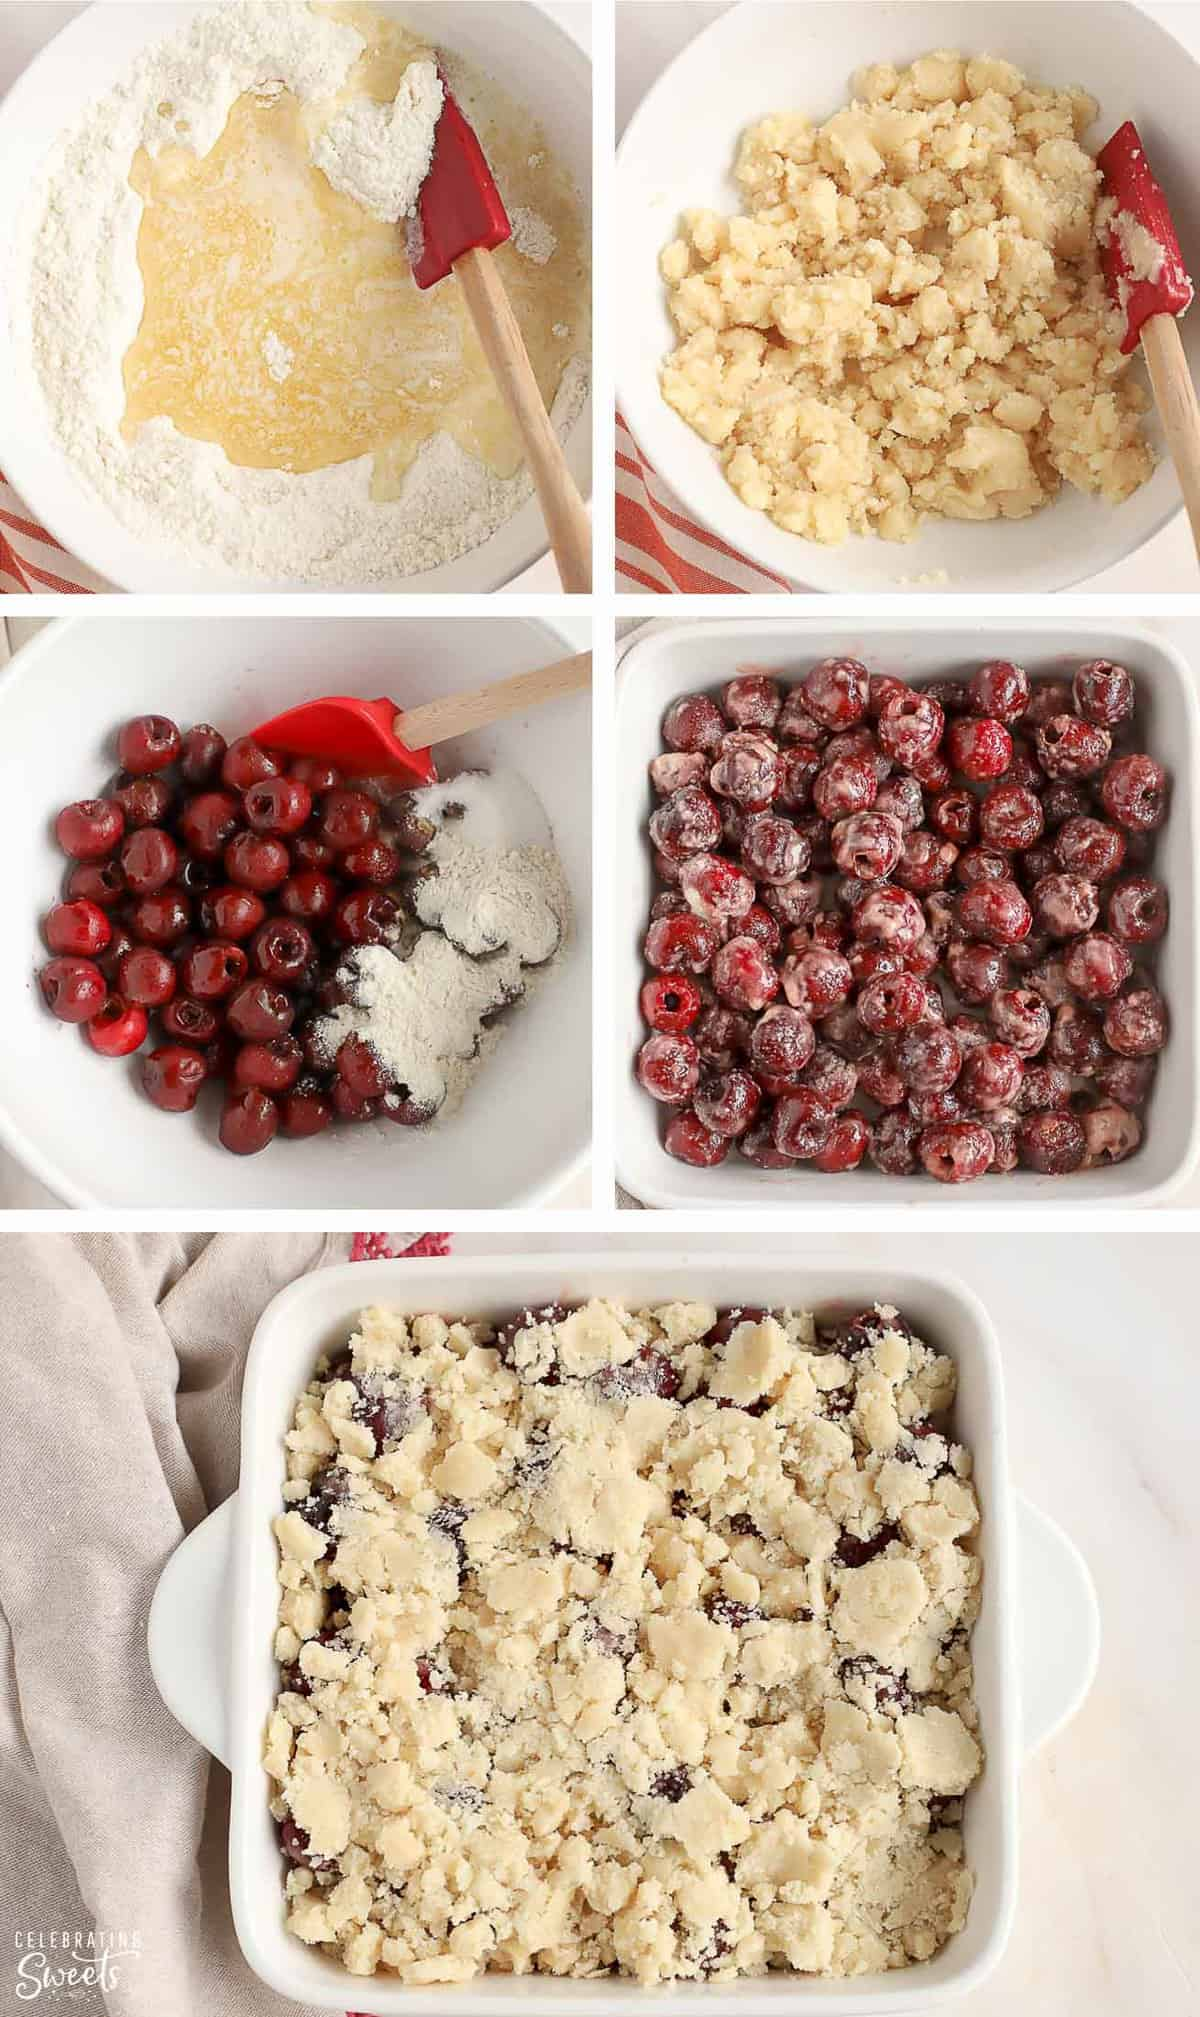 Cherry cobbler step by step recipe photo collage: cobbler topping in a bowl, cherry filling in a bowl, uncooked cobbler in a baking dish.